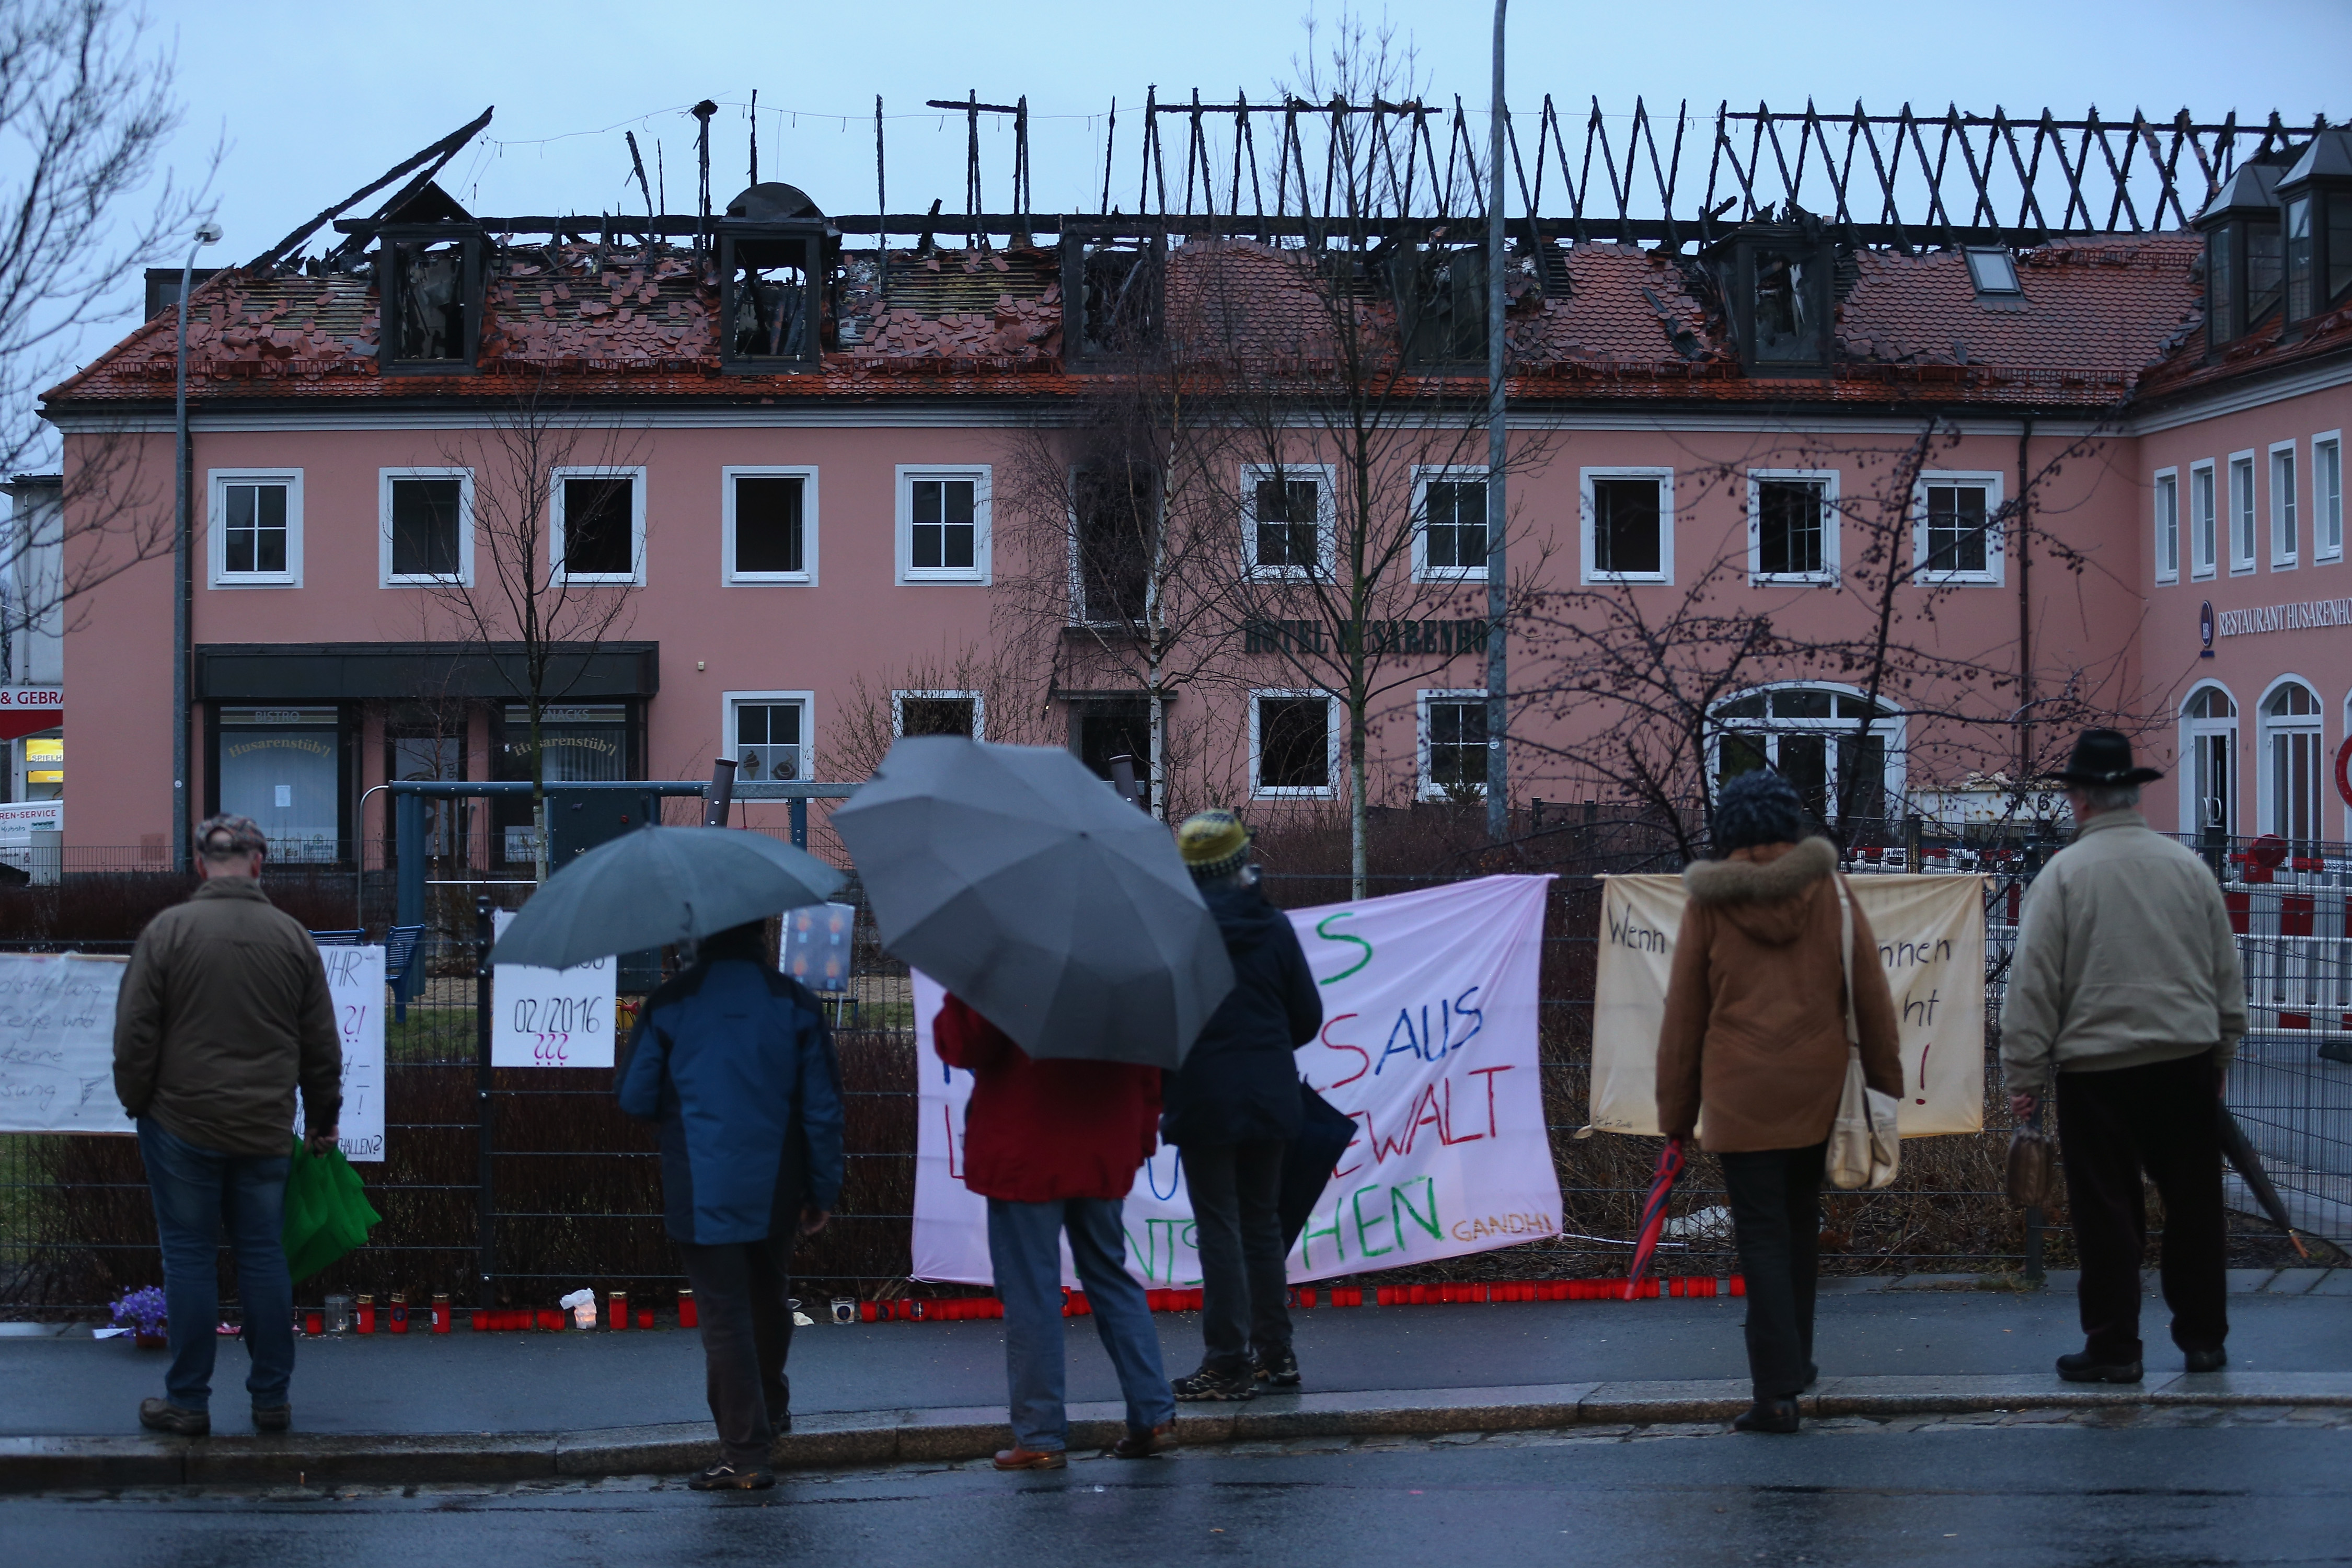 Bystanders look at the burnt-out remains of a former hotel that was to serve as a shelter for 300 asylum applicants following a fire in the early morning on February 21, 2016 in Bautzen, Germany.